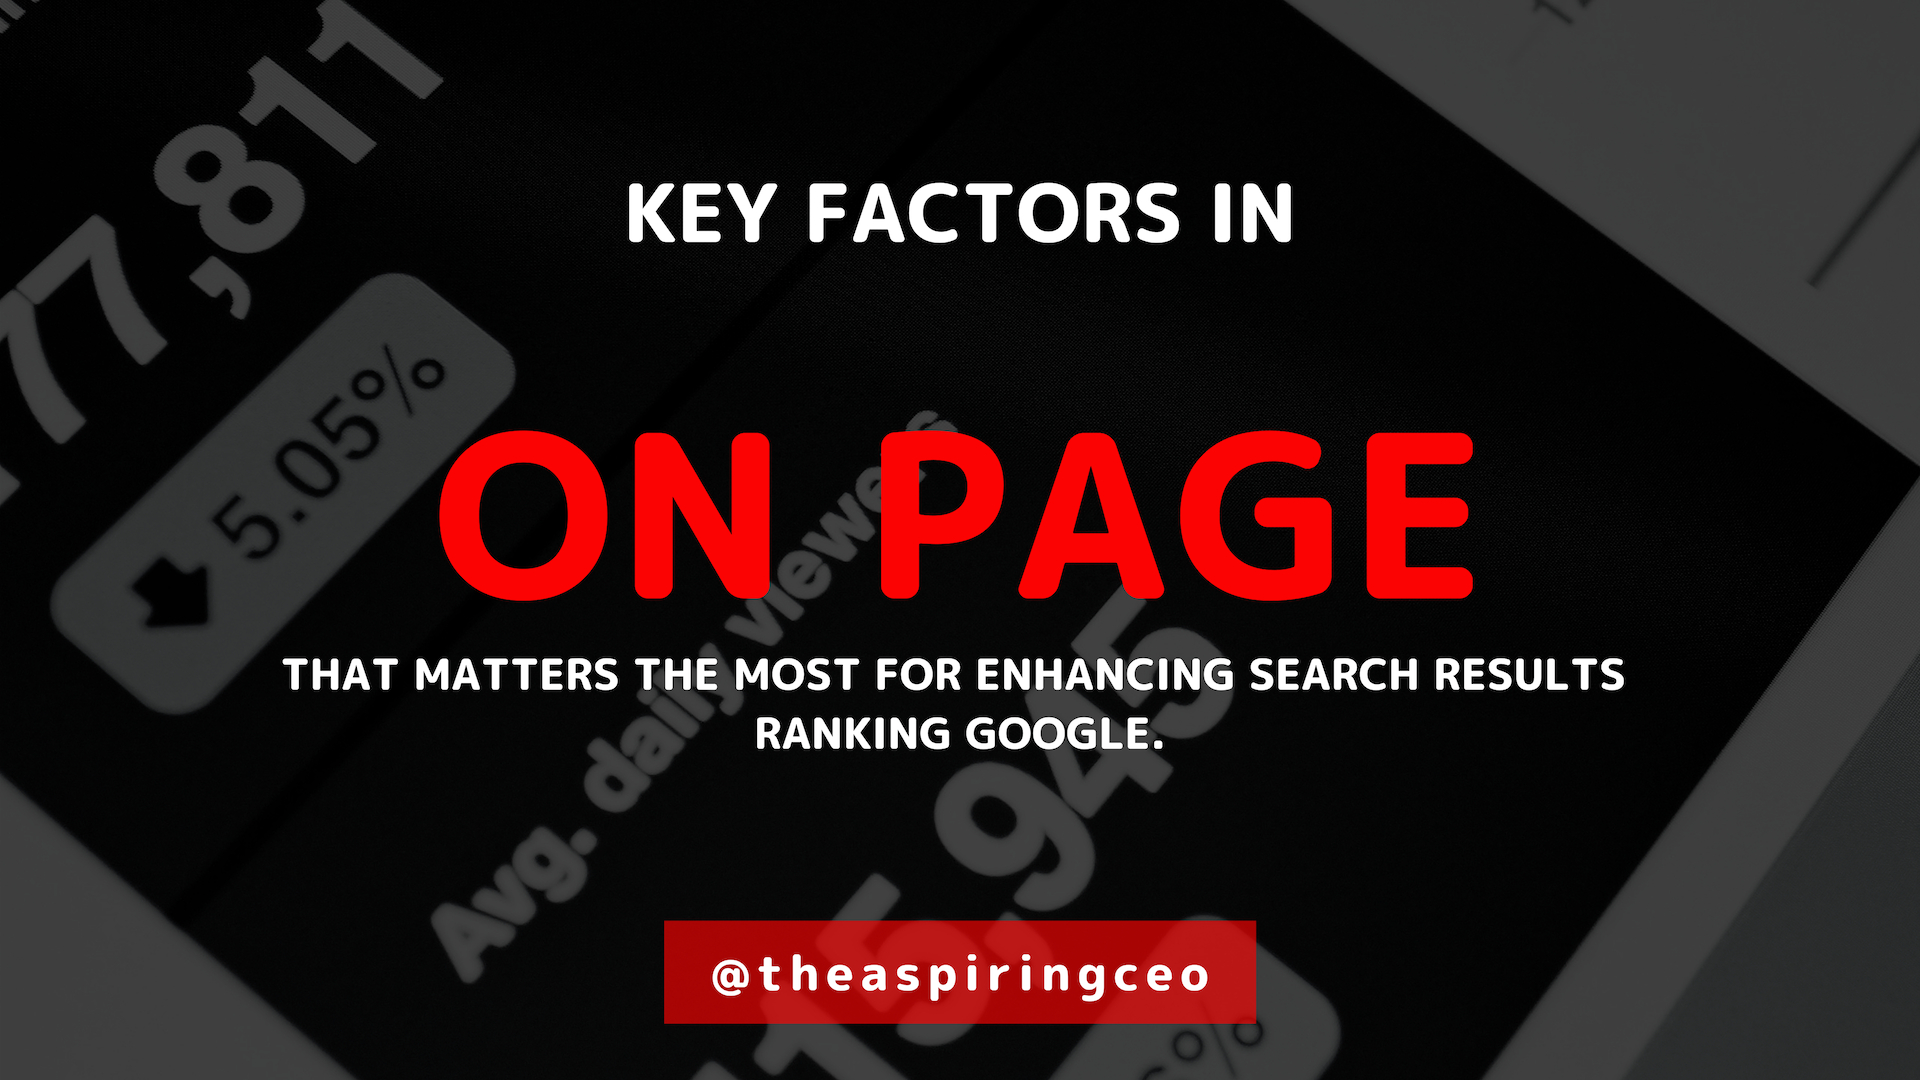 THE ON PAGE FACTORS THAT MATTERS THE MOST FOR GOOGLE